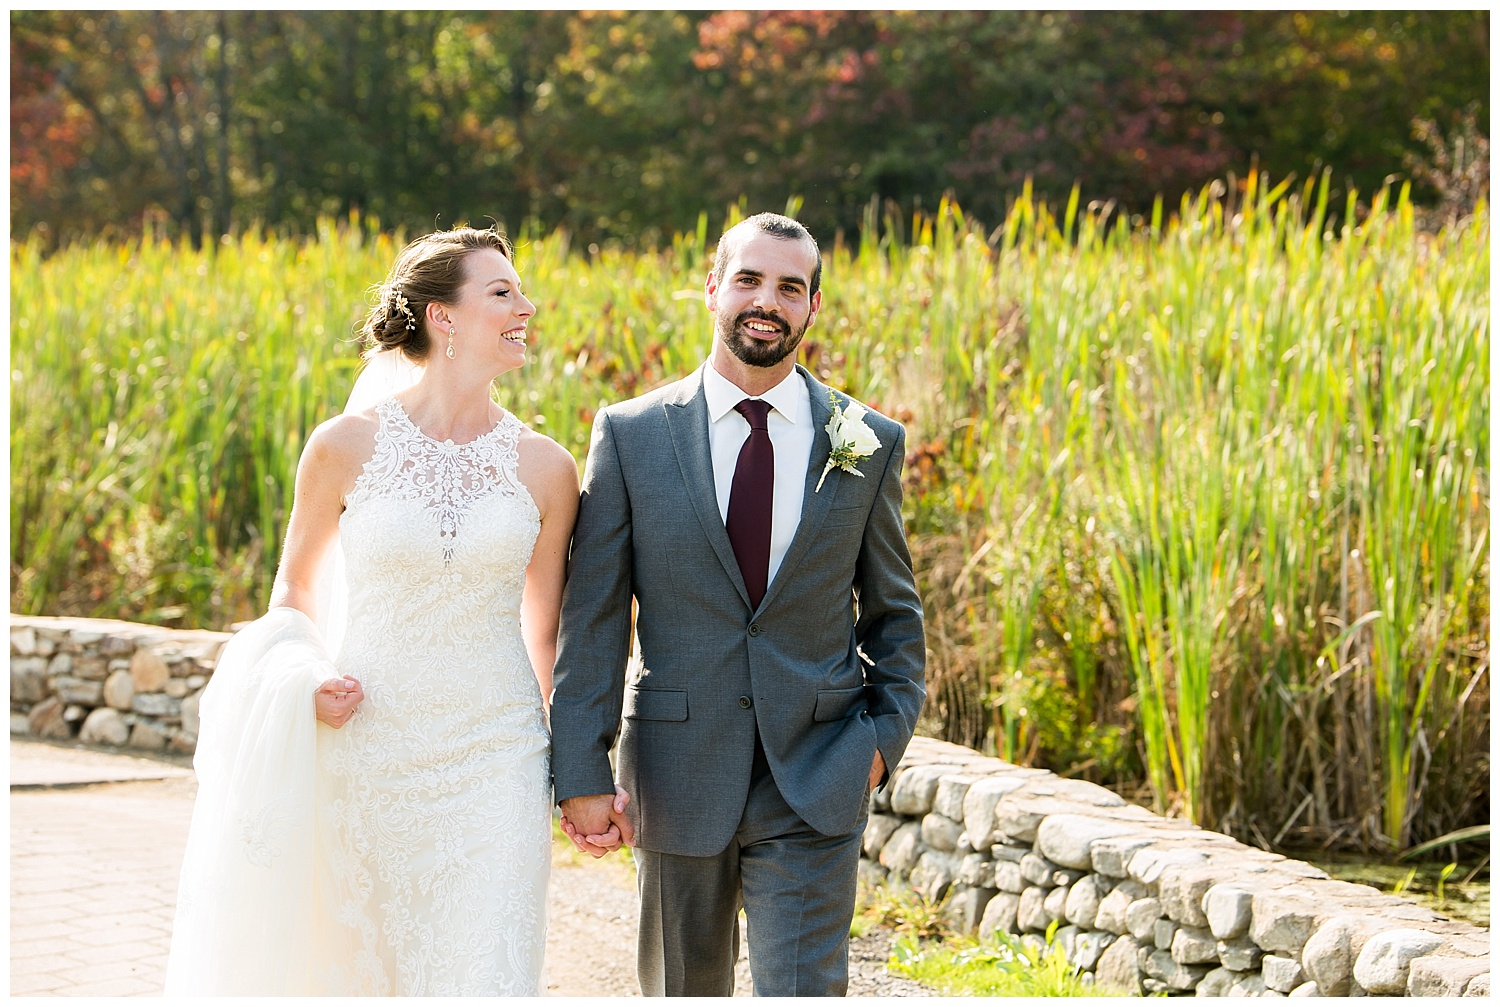 Lauren & Vinnie – Merrimack Valley Golf Club Wedding